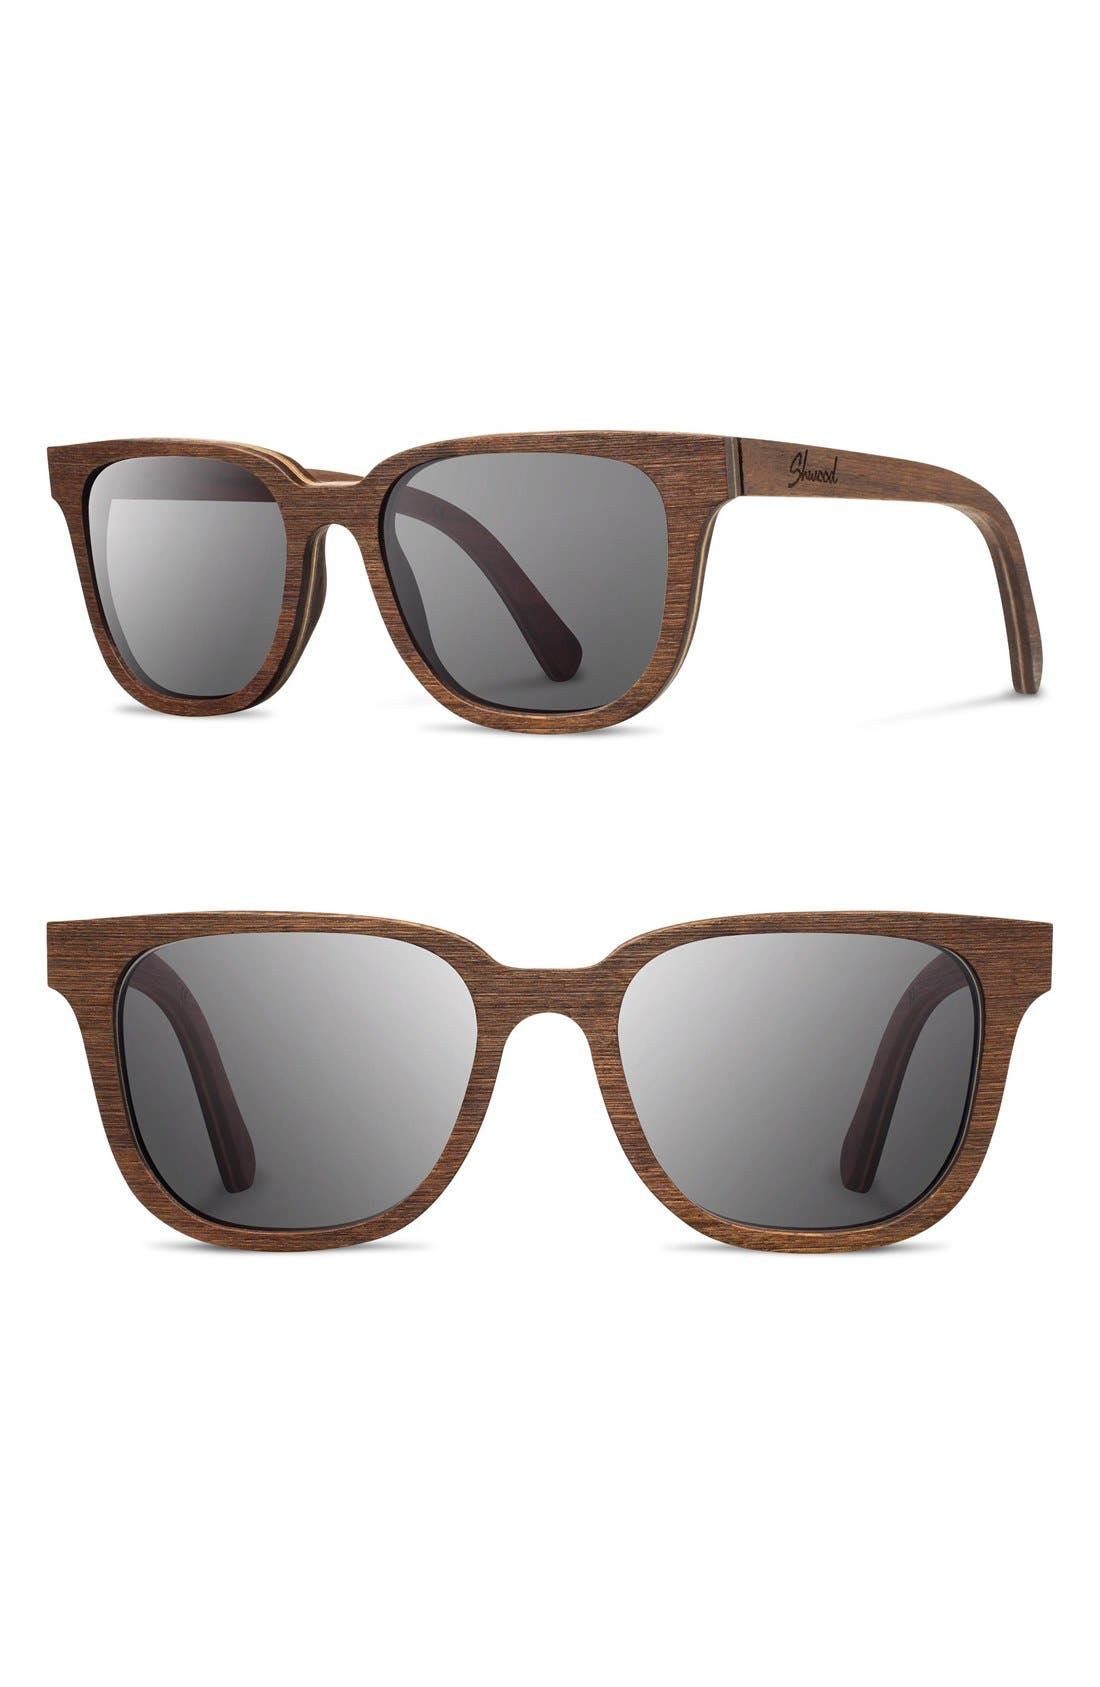 'Prescott' 52mm Wood Sunglasses,                         Main,                         color, Walnut/ Grey